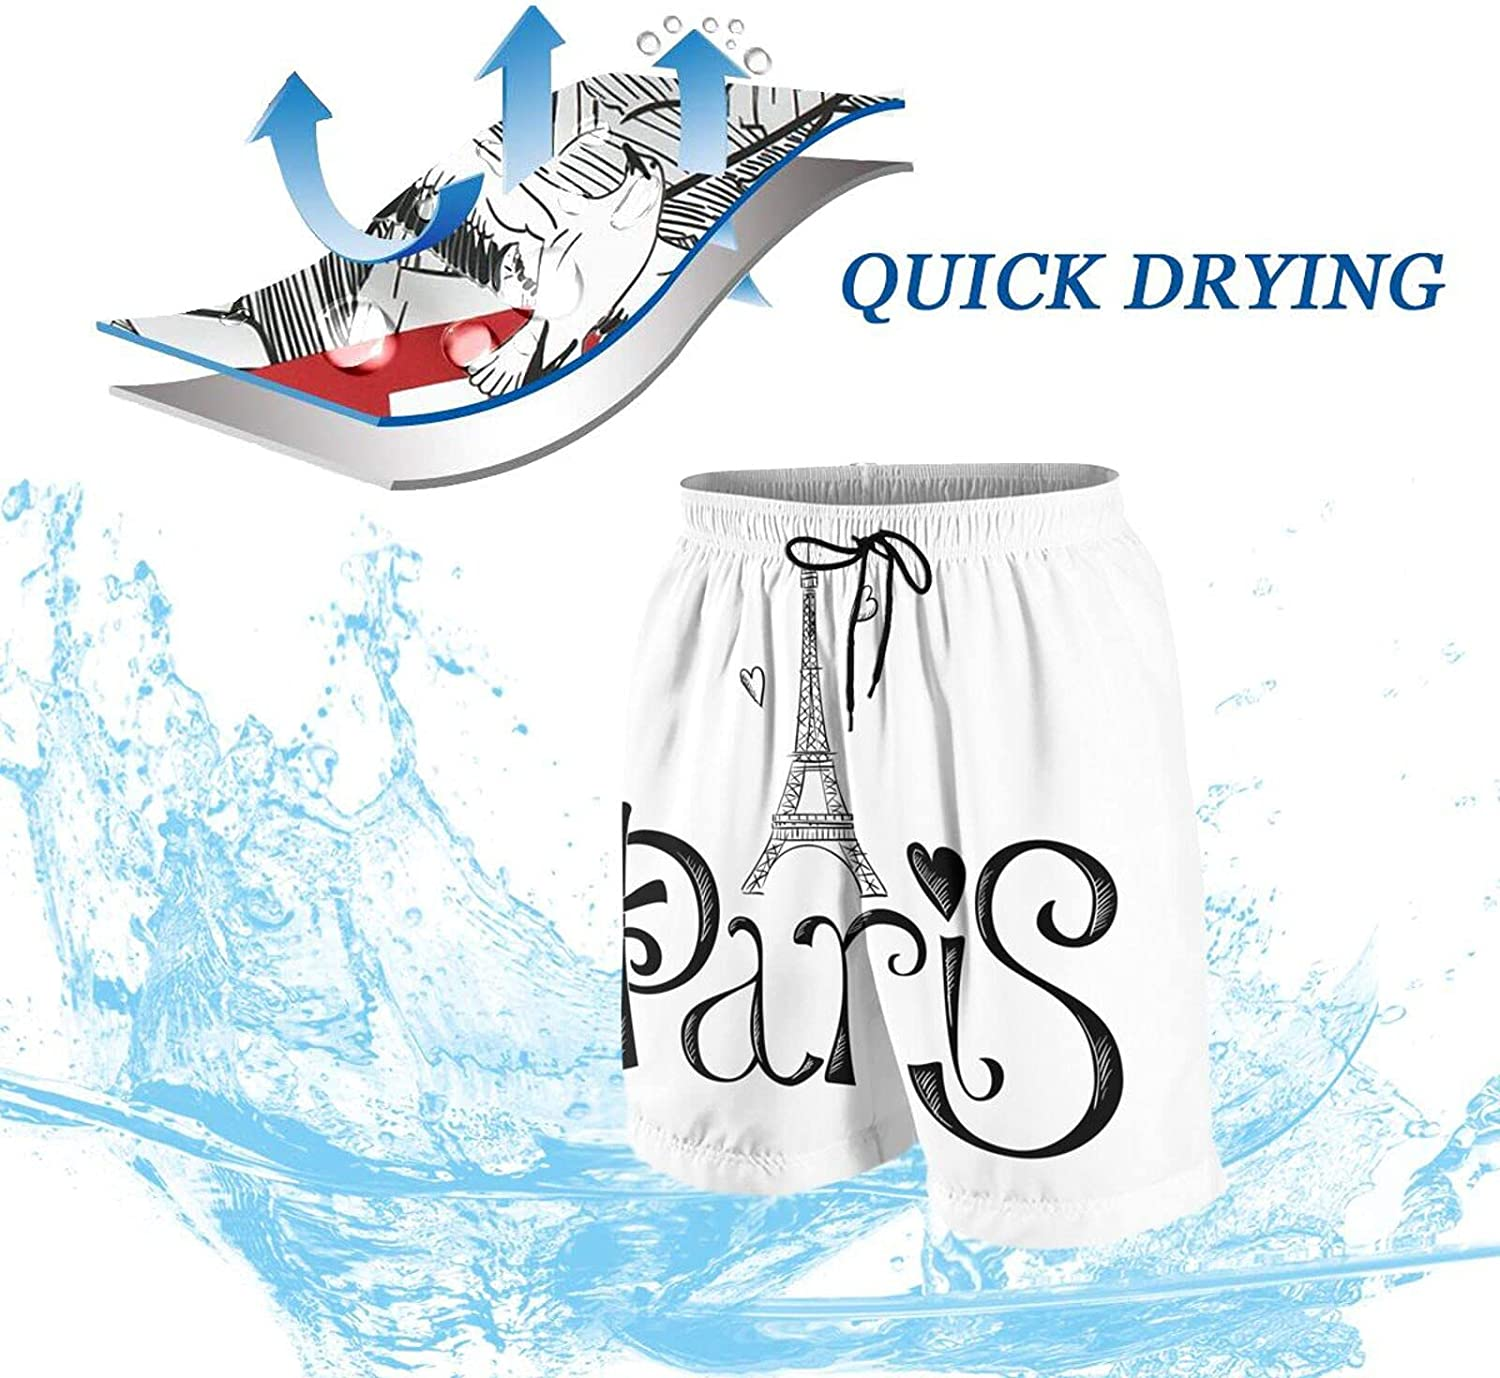 and Drawn with Eiffel Tower Paris Kids Beach Shorts Youth Boys Board Shorts Trunk Swim Swimming Pants for 7-20 Years White